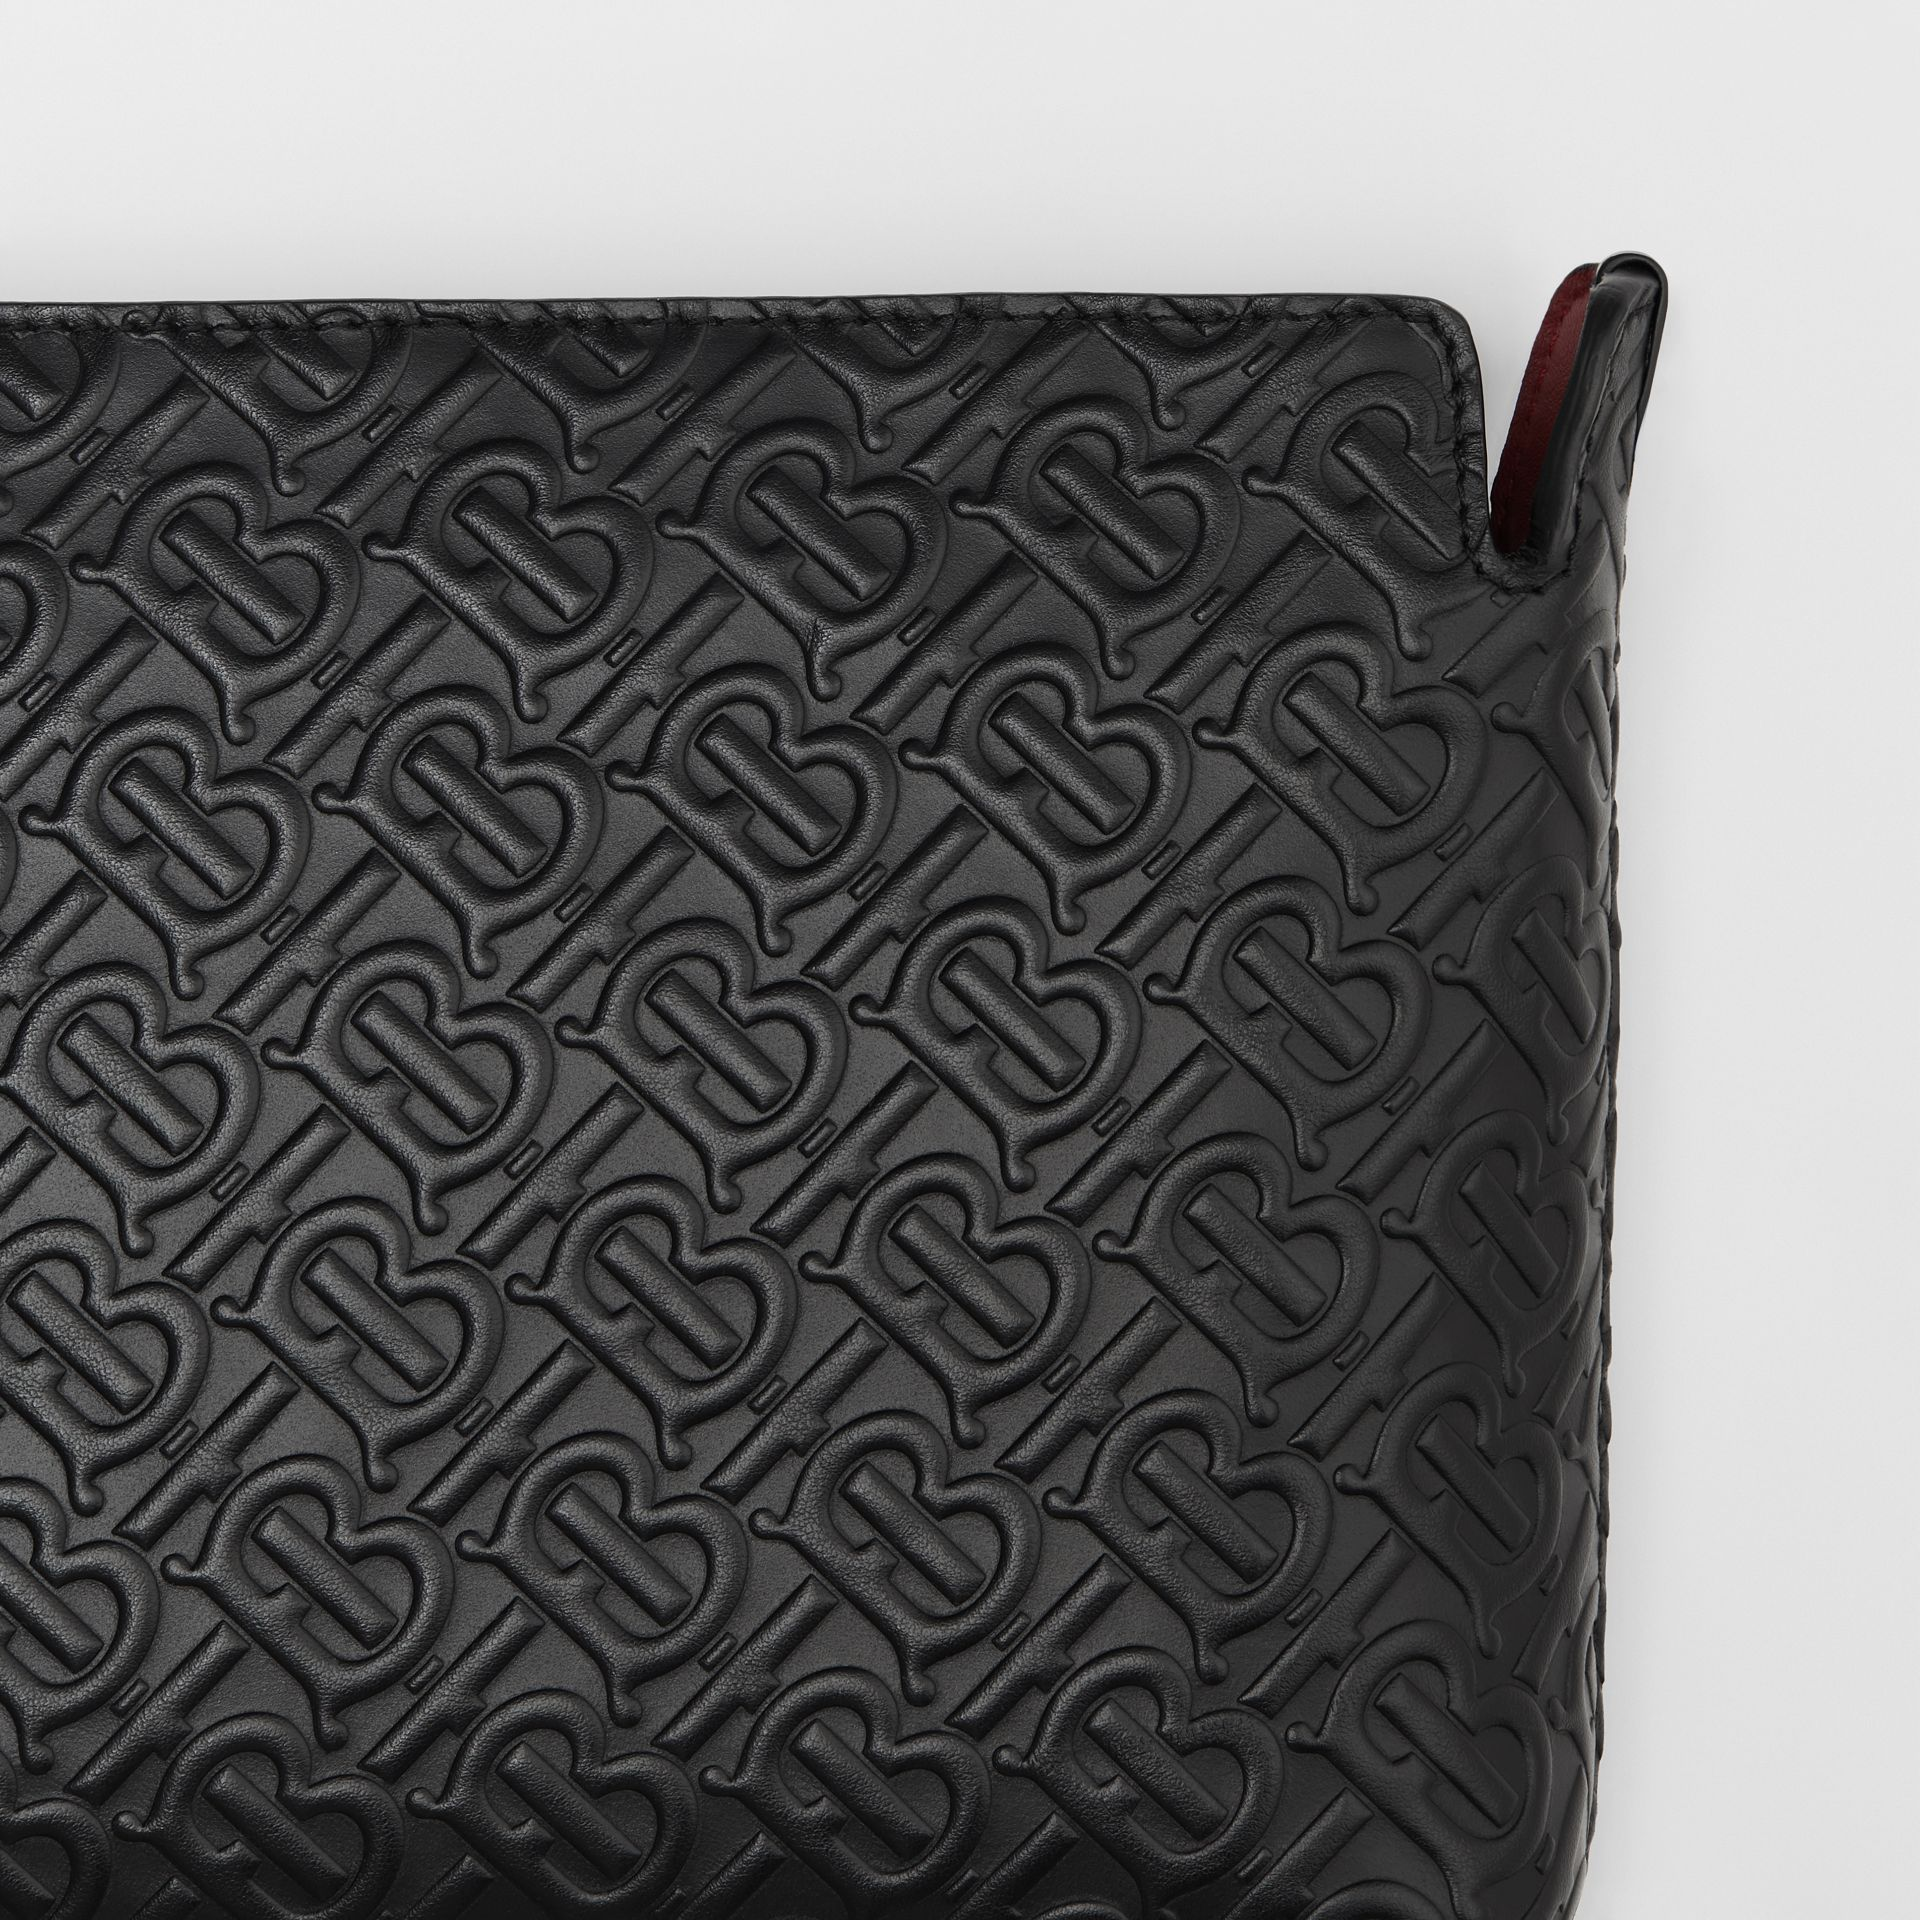 Medium Monogram Leather Clutch in Black - Women | Burberry Australia - gallery image 1